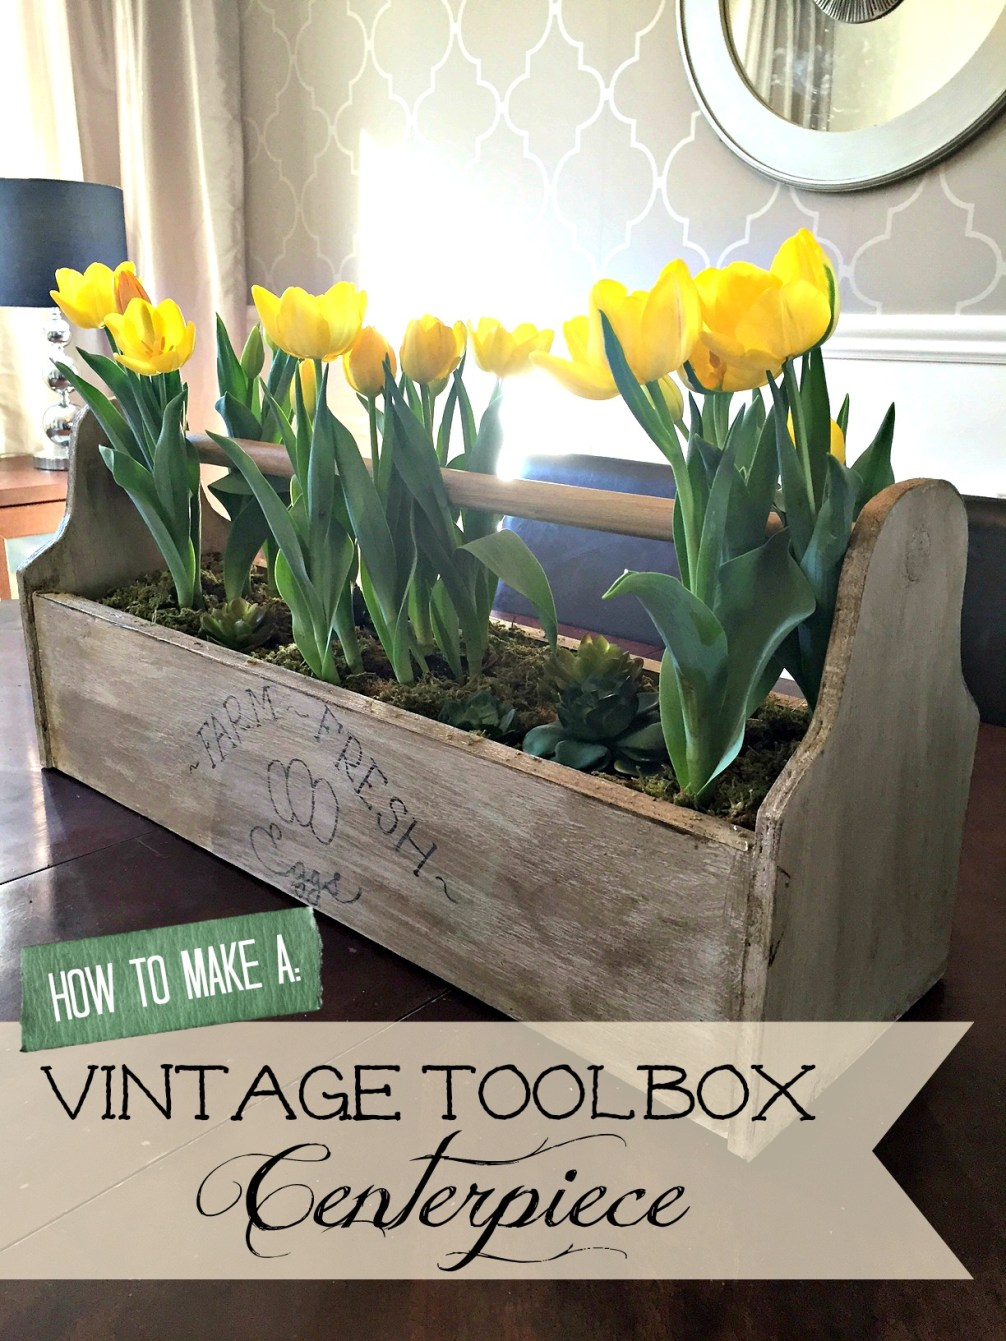 How to Make a Vintage Toolbox Centerpiece for Easter or spring with a Fixer Upper Style Farmhouse Vintage Toolbox apurdylittlehouse.com